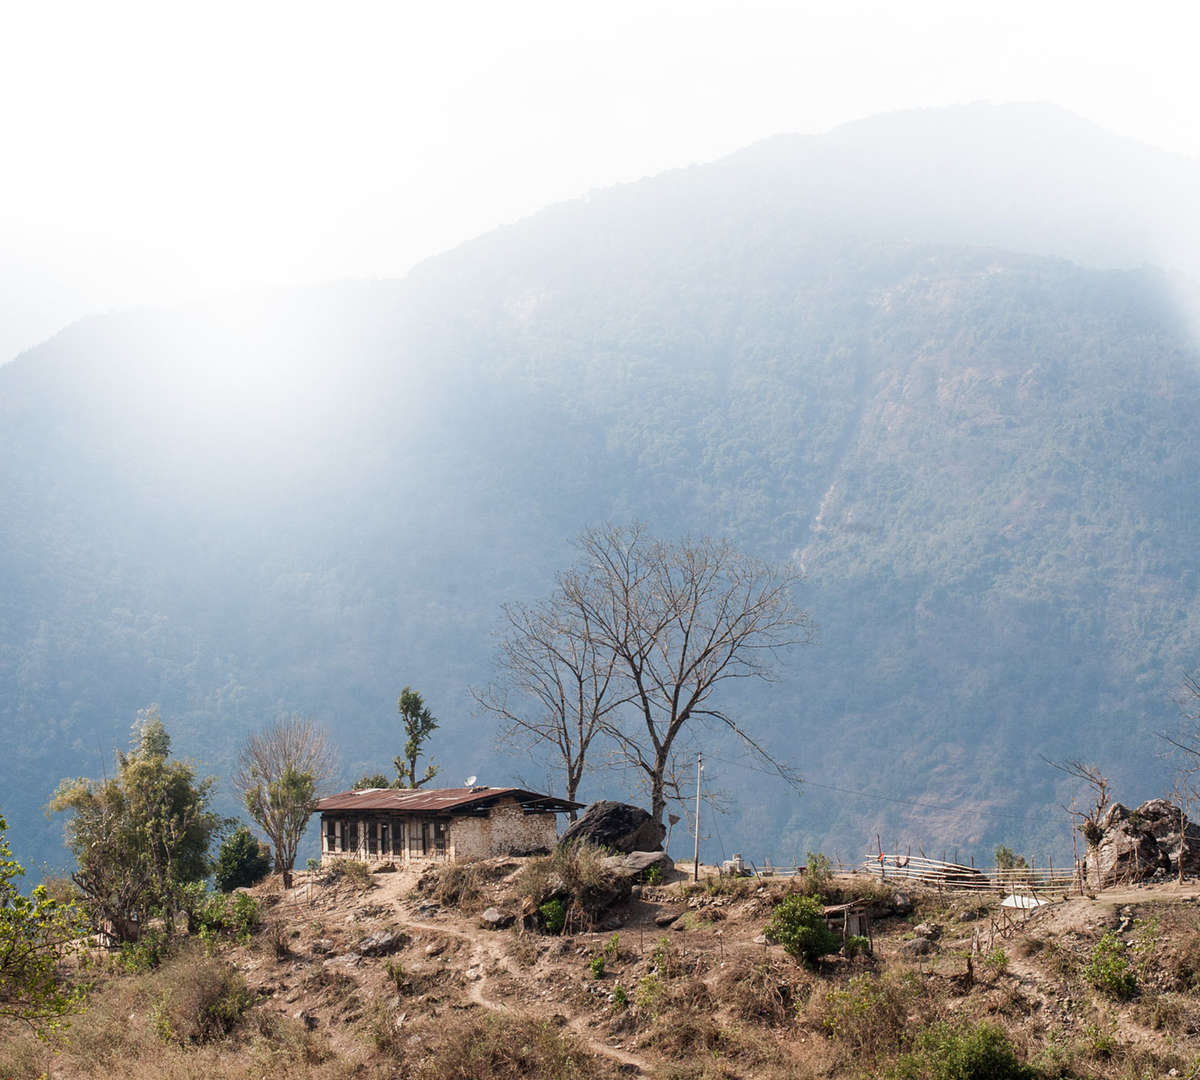 A rural village in Bhutan. Photo Credit: Susan Warner 2016.